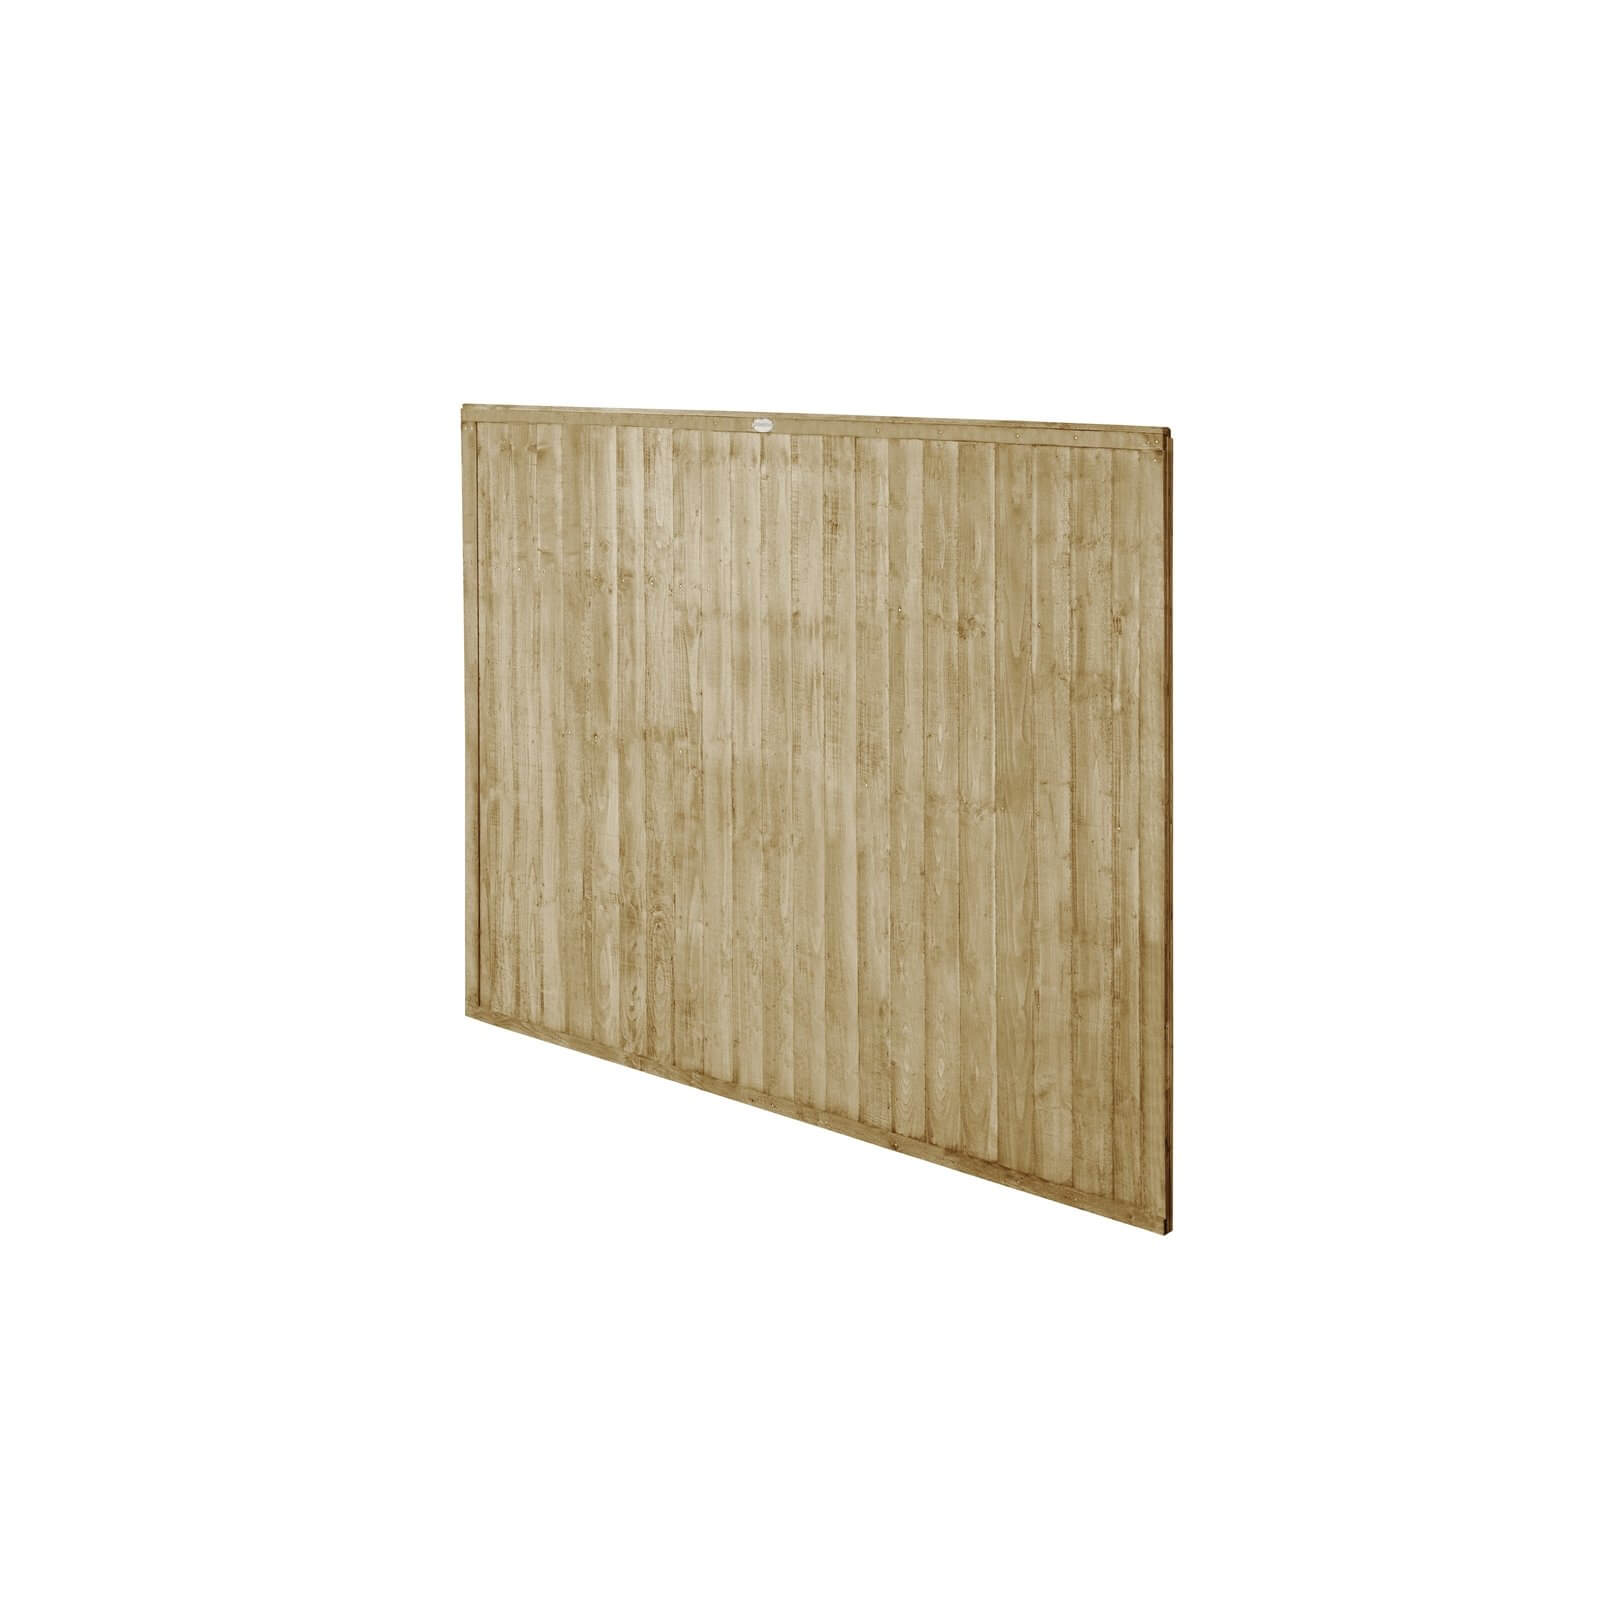 6ft x 5ft (1.83m x 1.52m) Pressure Treated Closeboard Fence Panel - Pack of 3